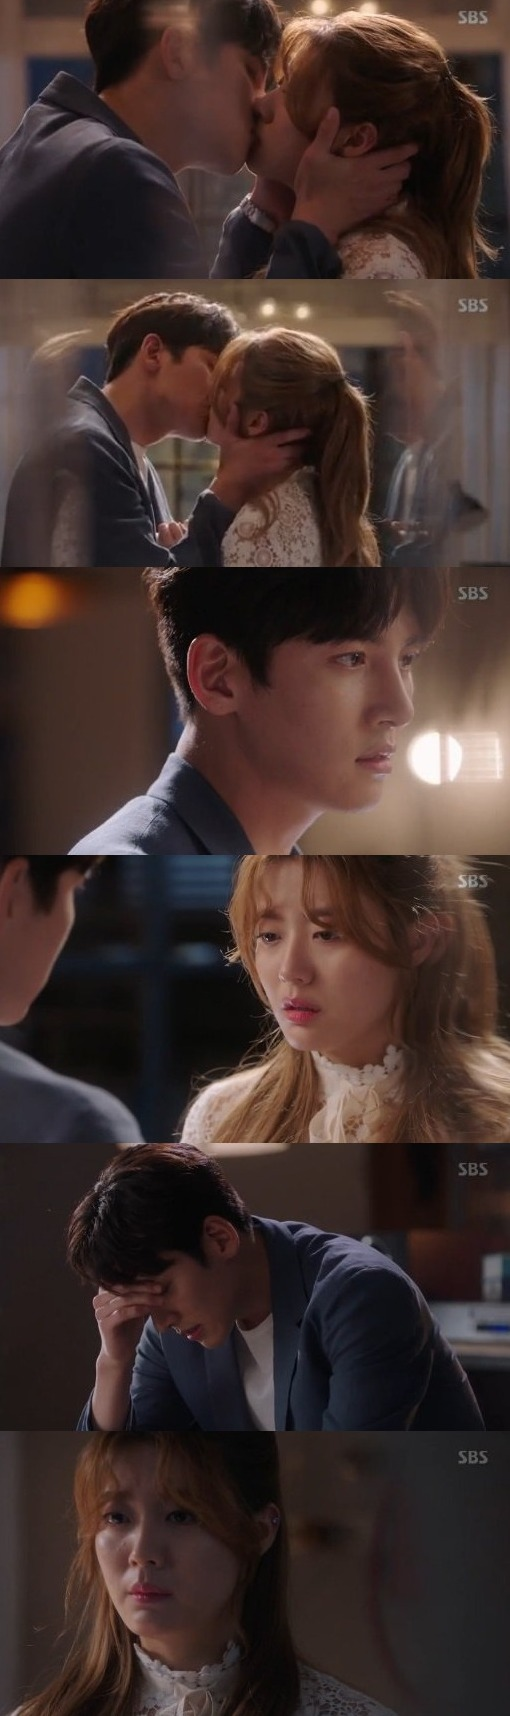 [Spoiler] Added episodes 17 and 18 captures for the Korean drama 'Suspicious Partner'